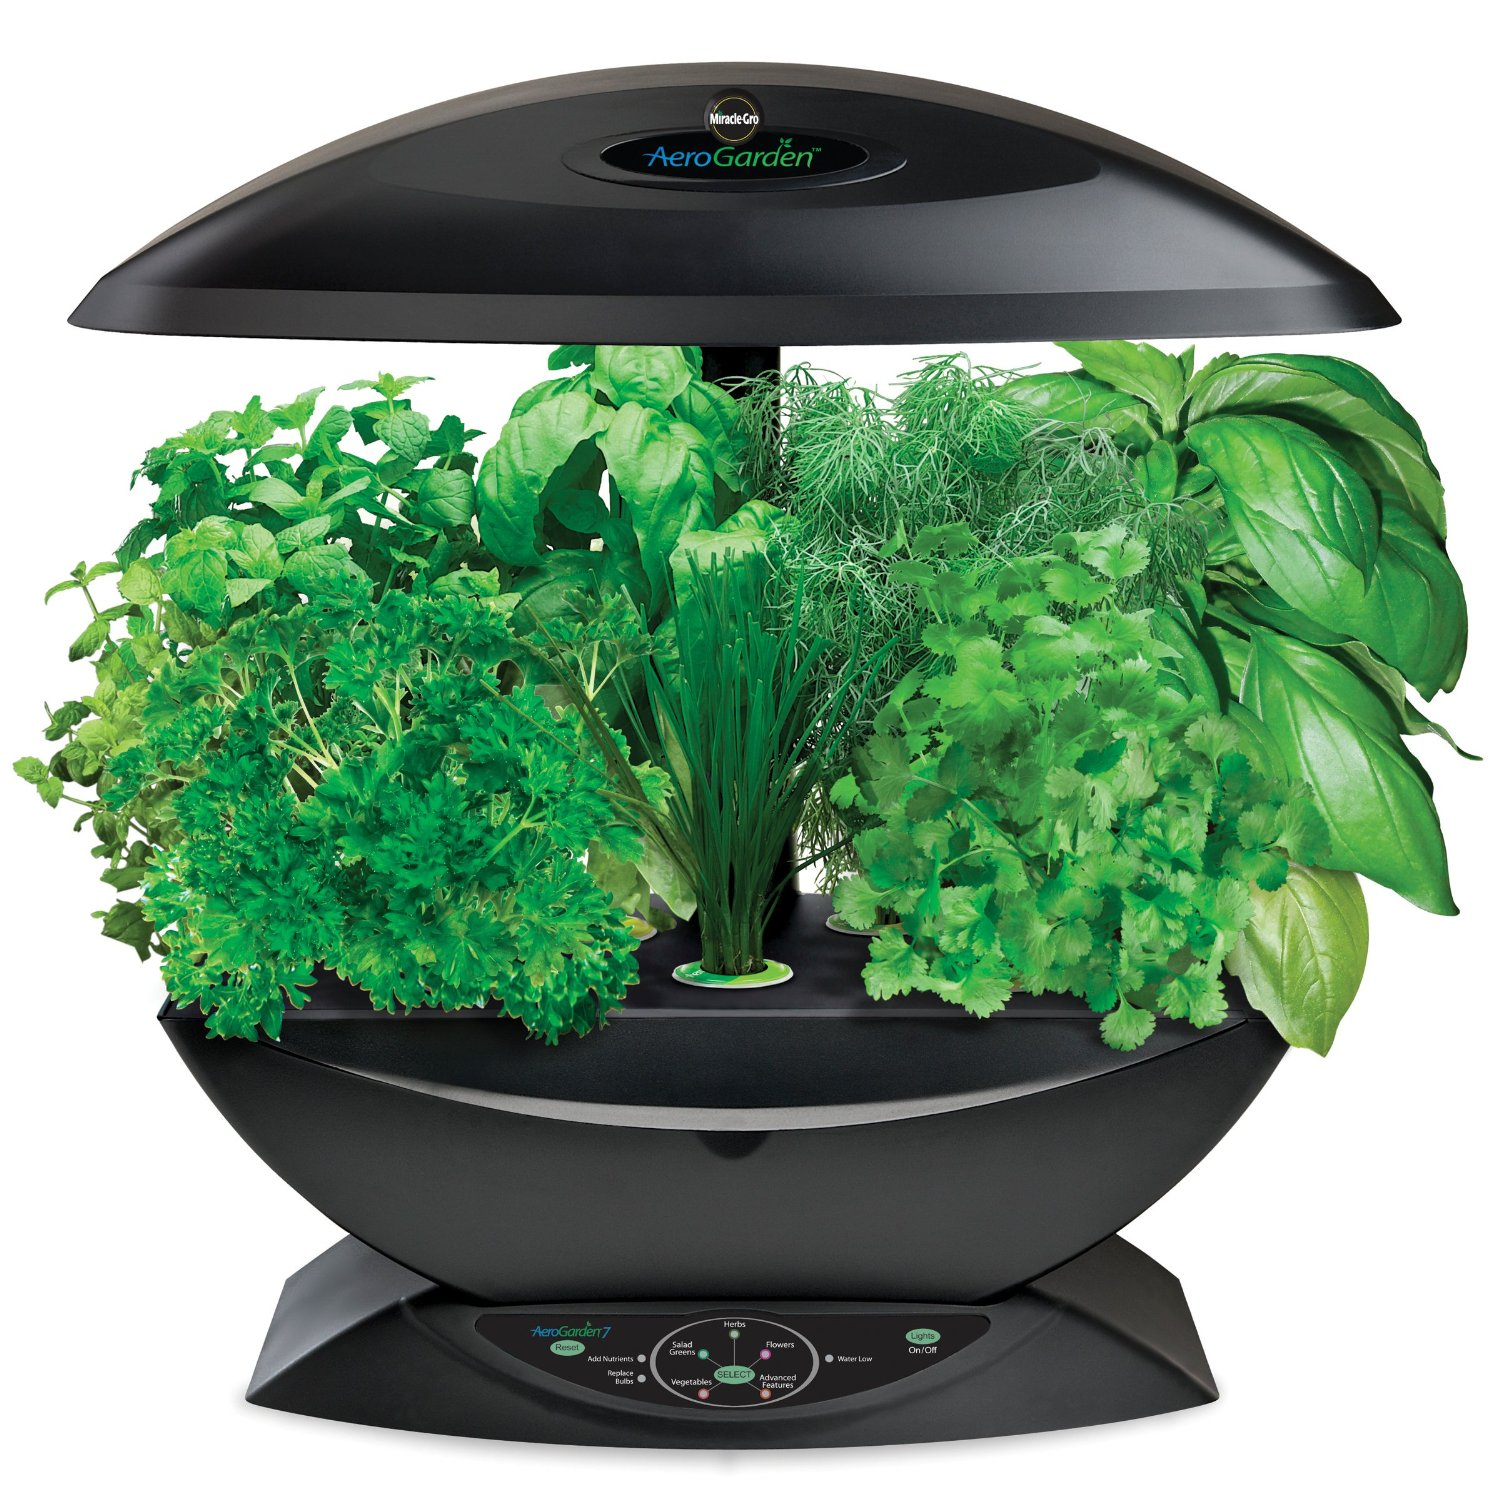 Home Herb Garden Kit Miracle Gro Aerogarden With Gourmet Herb Seed Kit 99